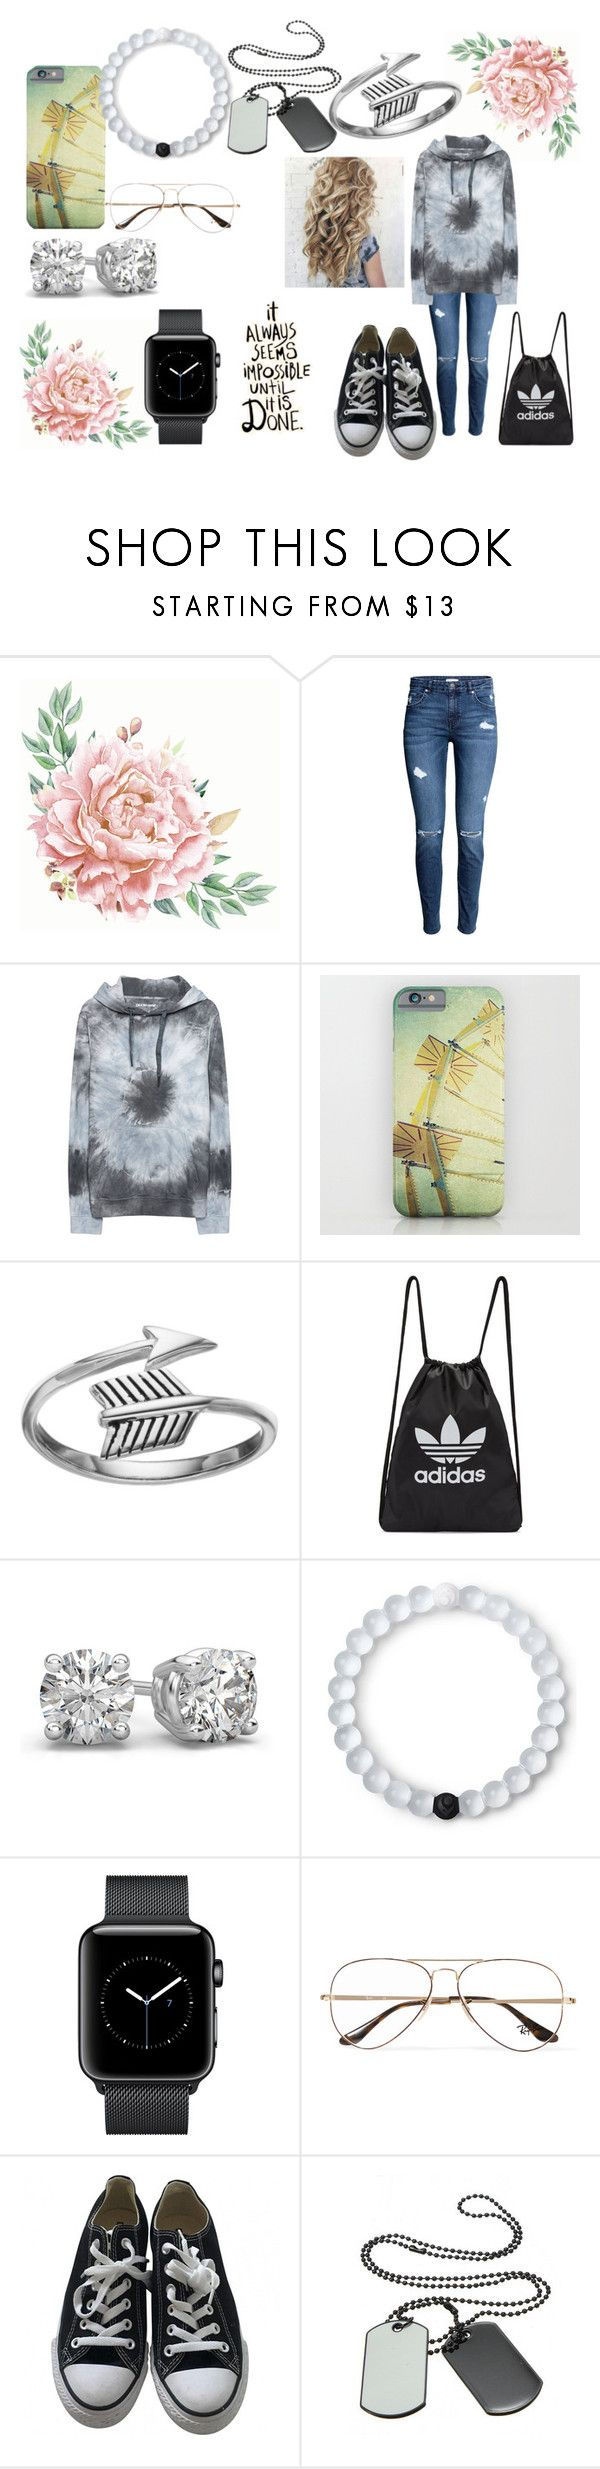 """....*inspirational title*........"" by bethecaptain on Polyvore featuring True Religion, Primrose, adidas Originals, Lokai, Ray-Ban and Converse"